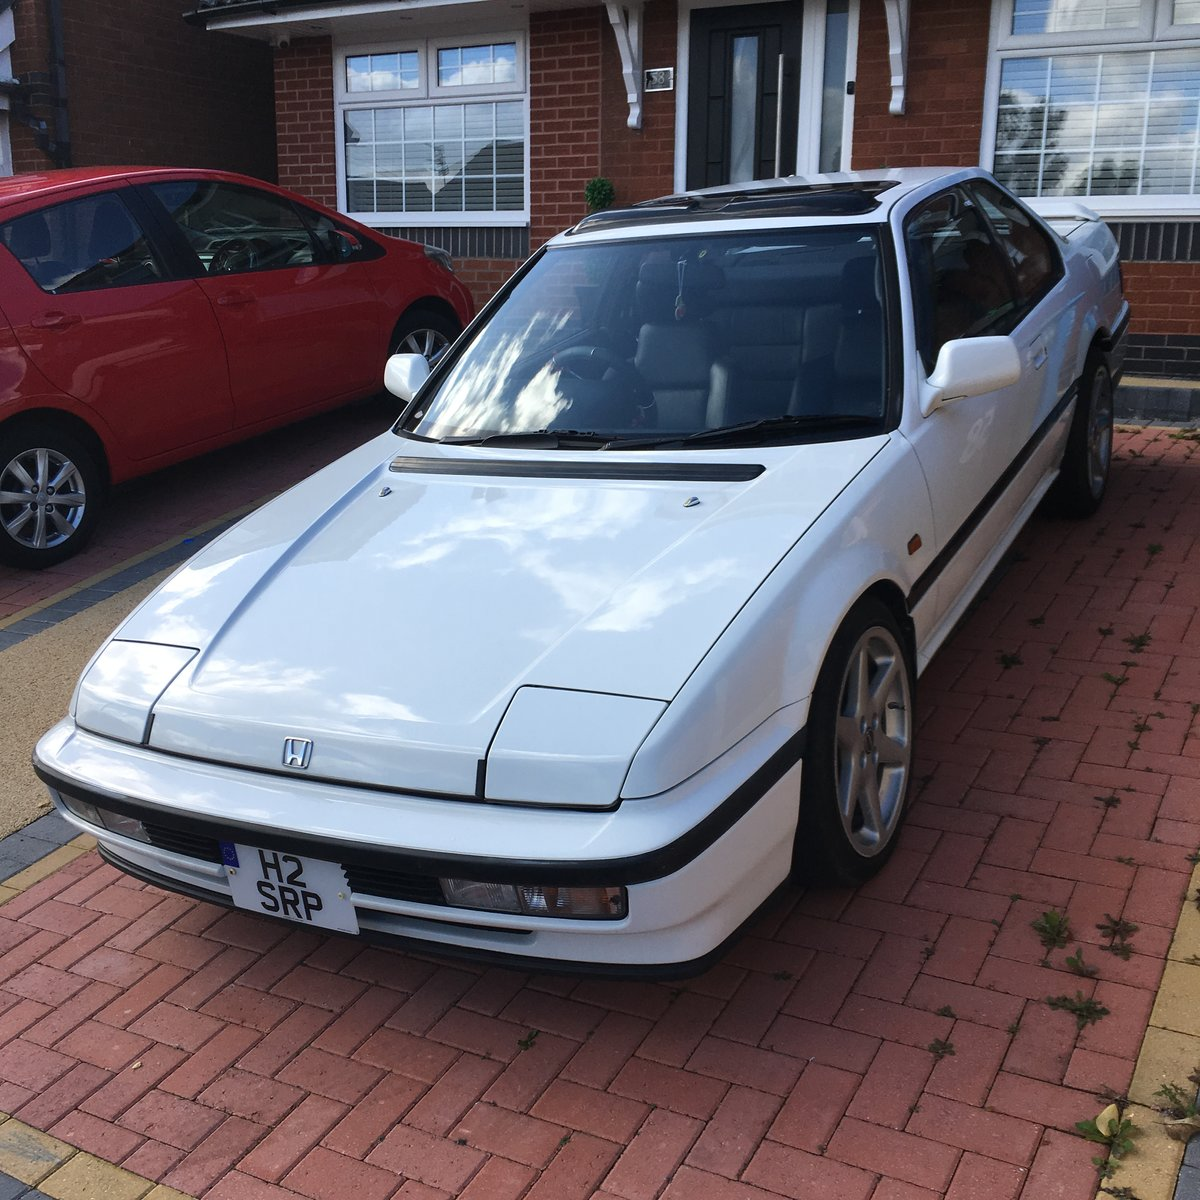 1990 Honda prelude Auto, 4WS, 150bhp (B20A7) For Sale (picture 3 of 6)